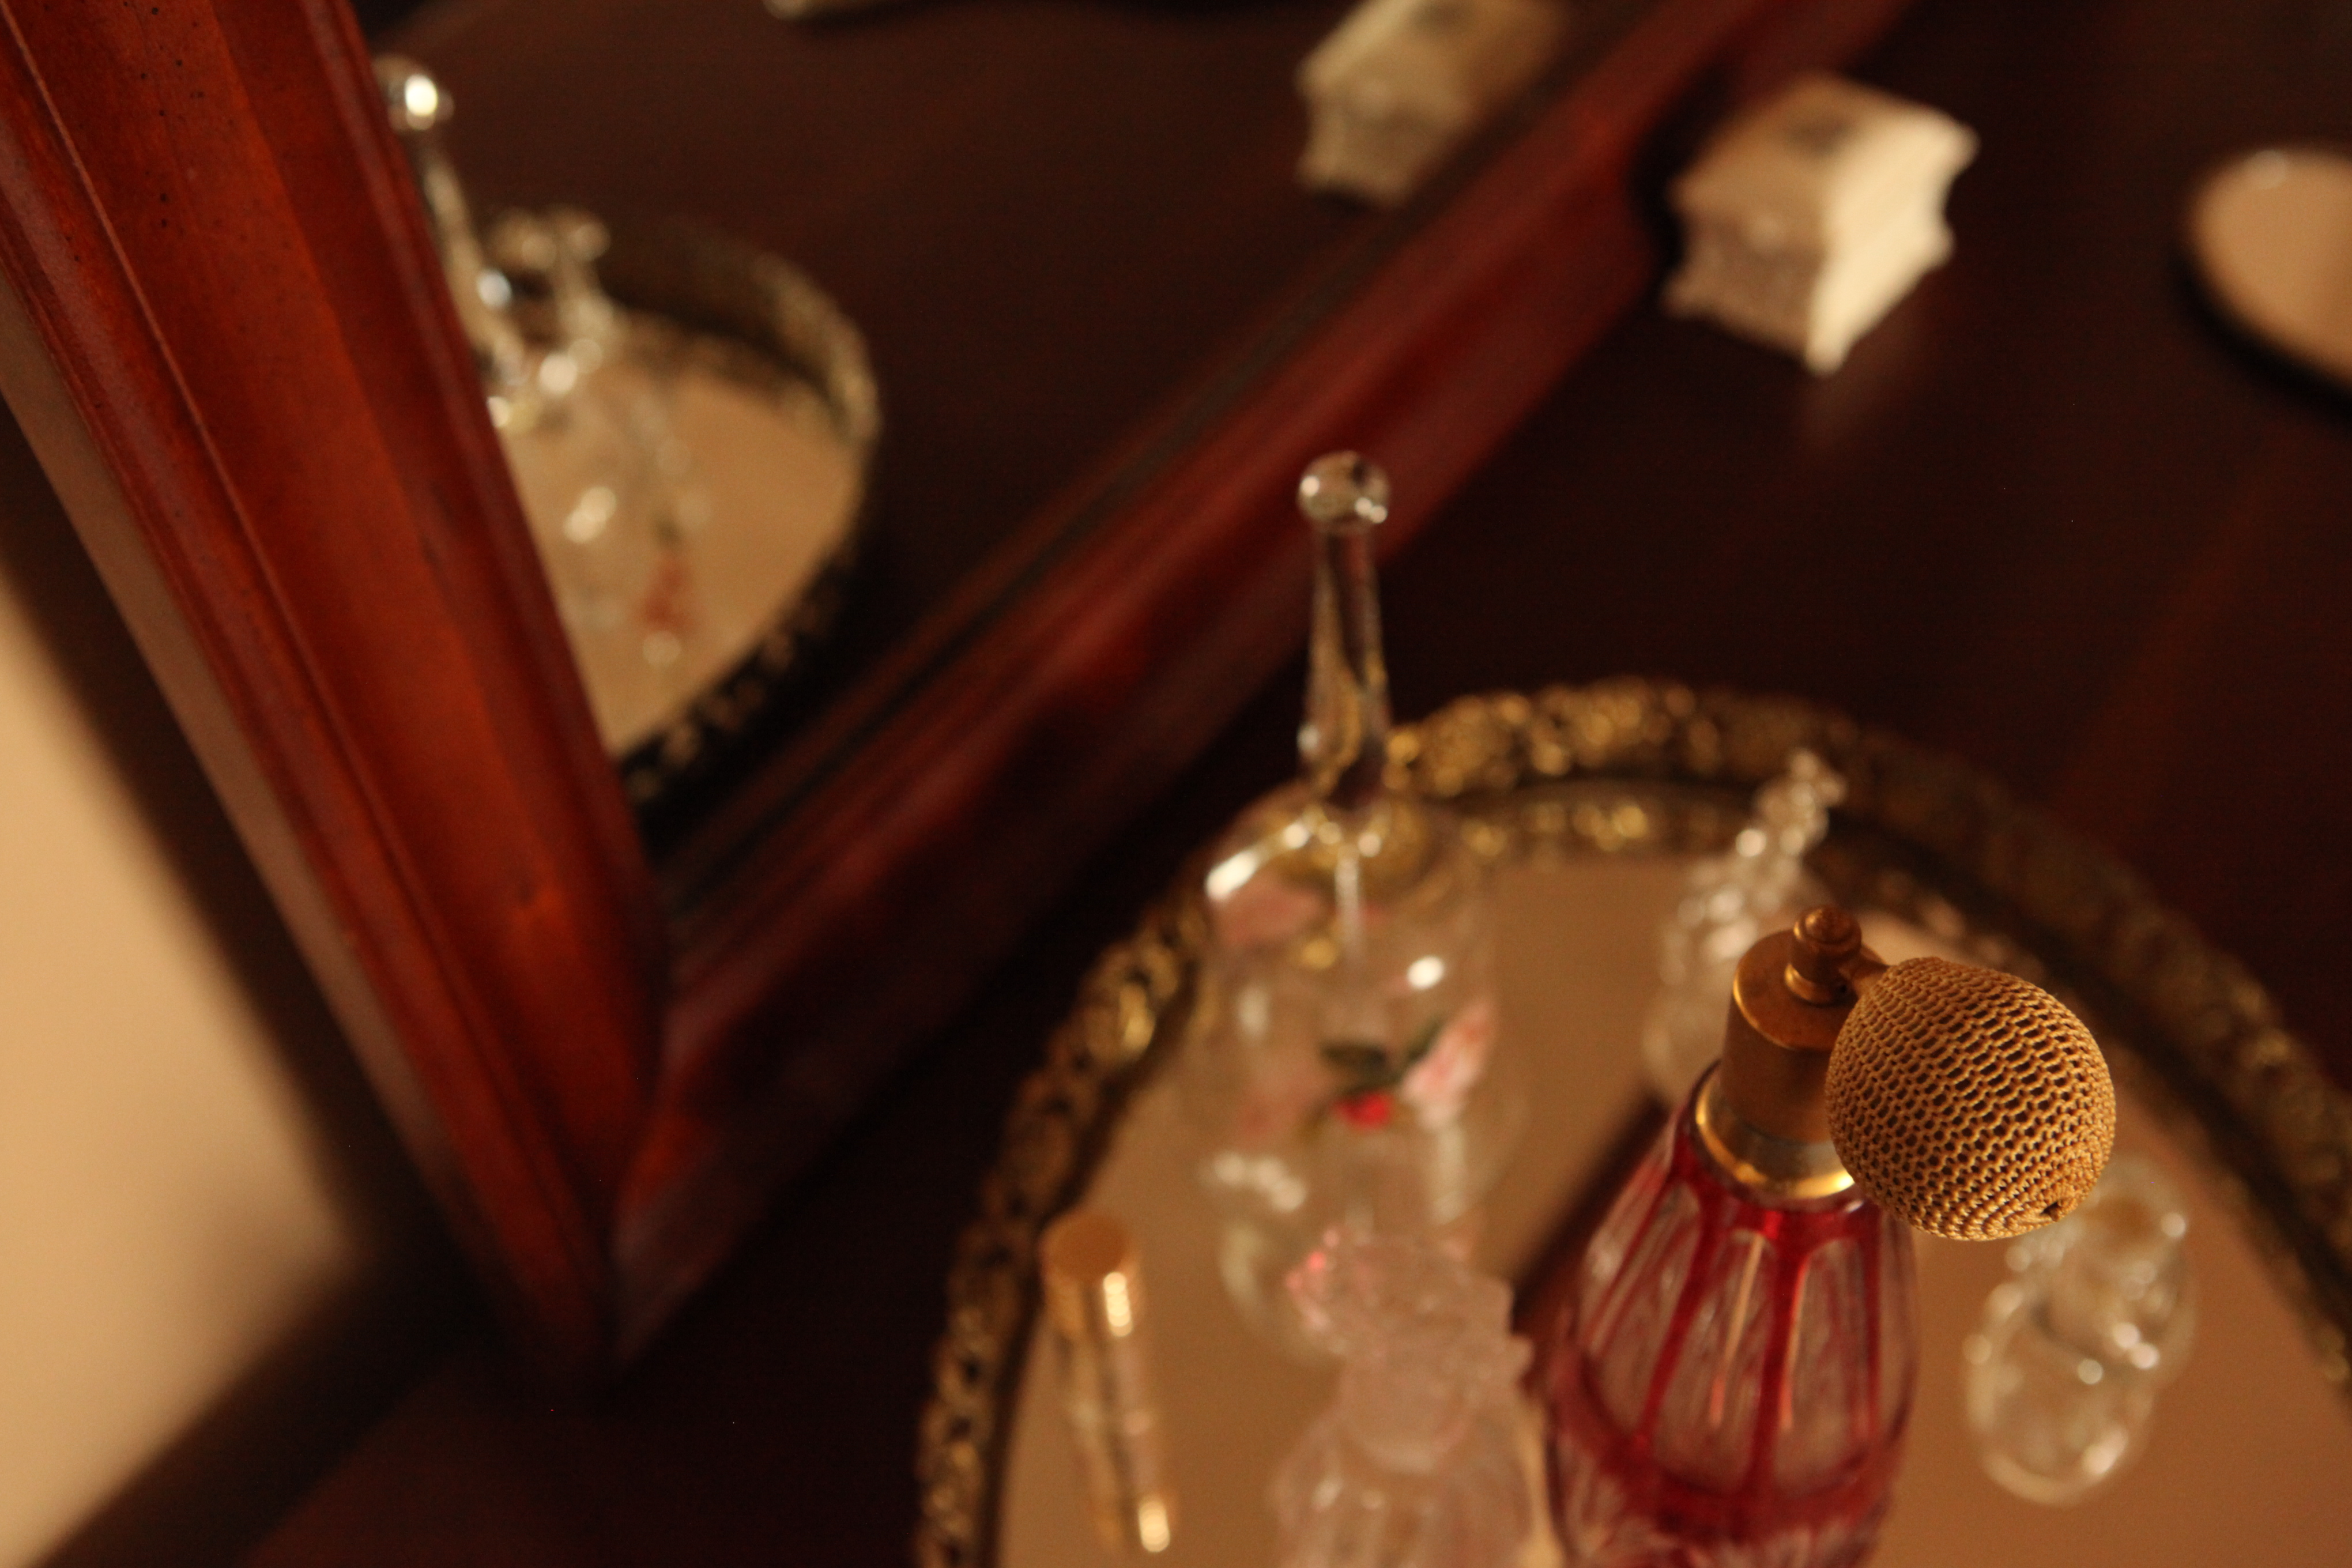 perfume and mirror